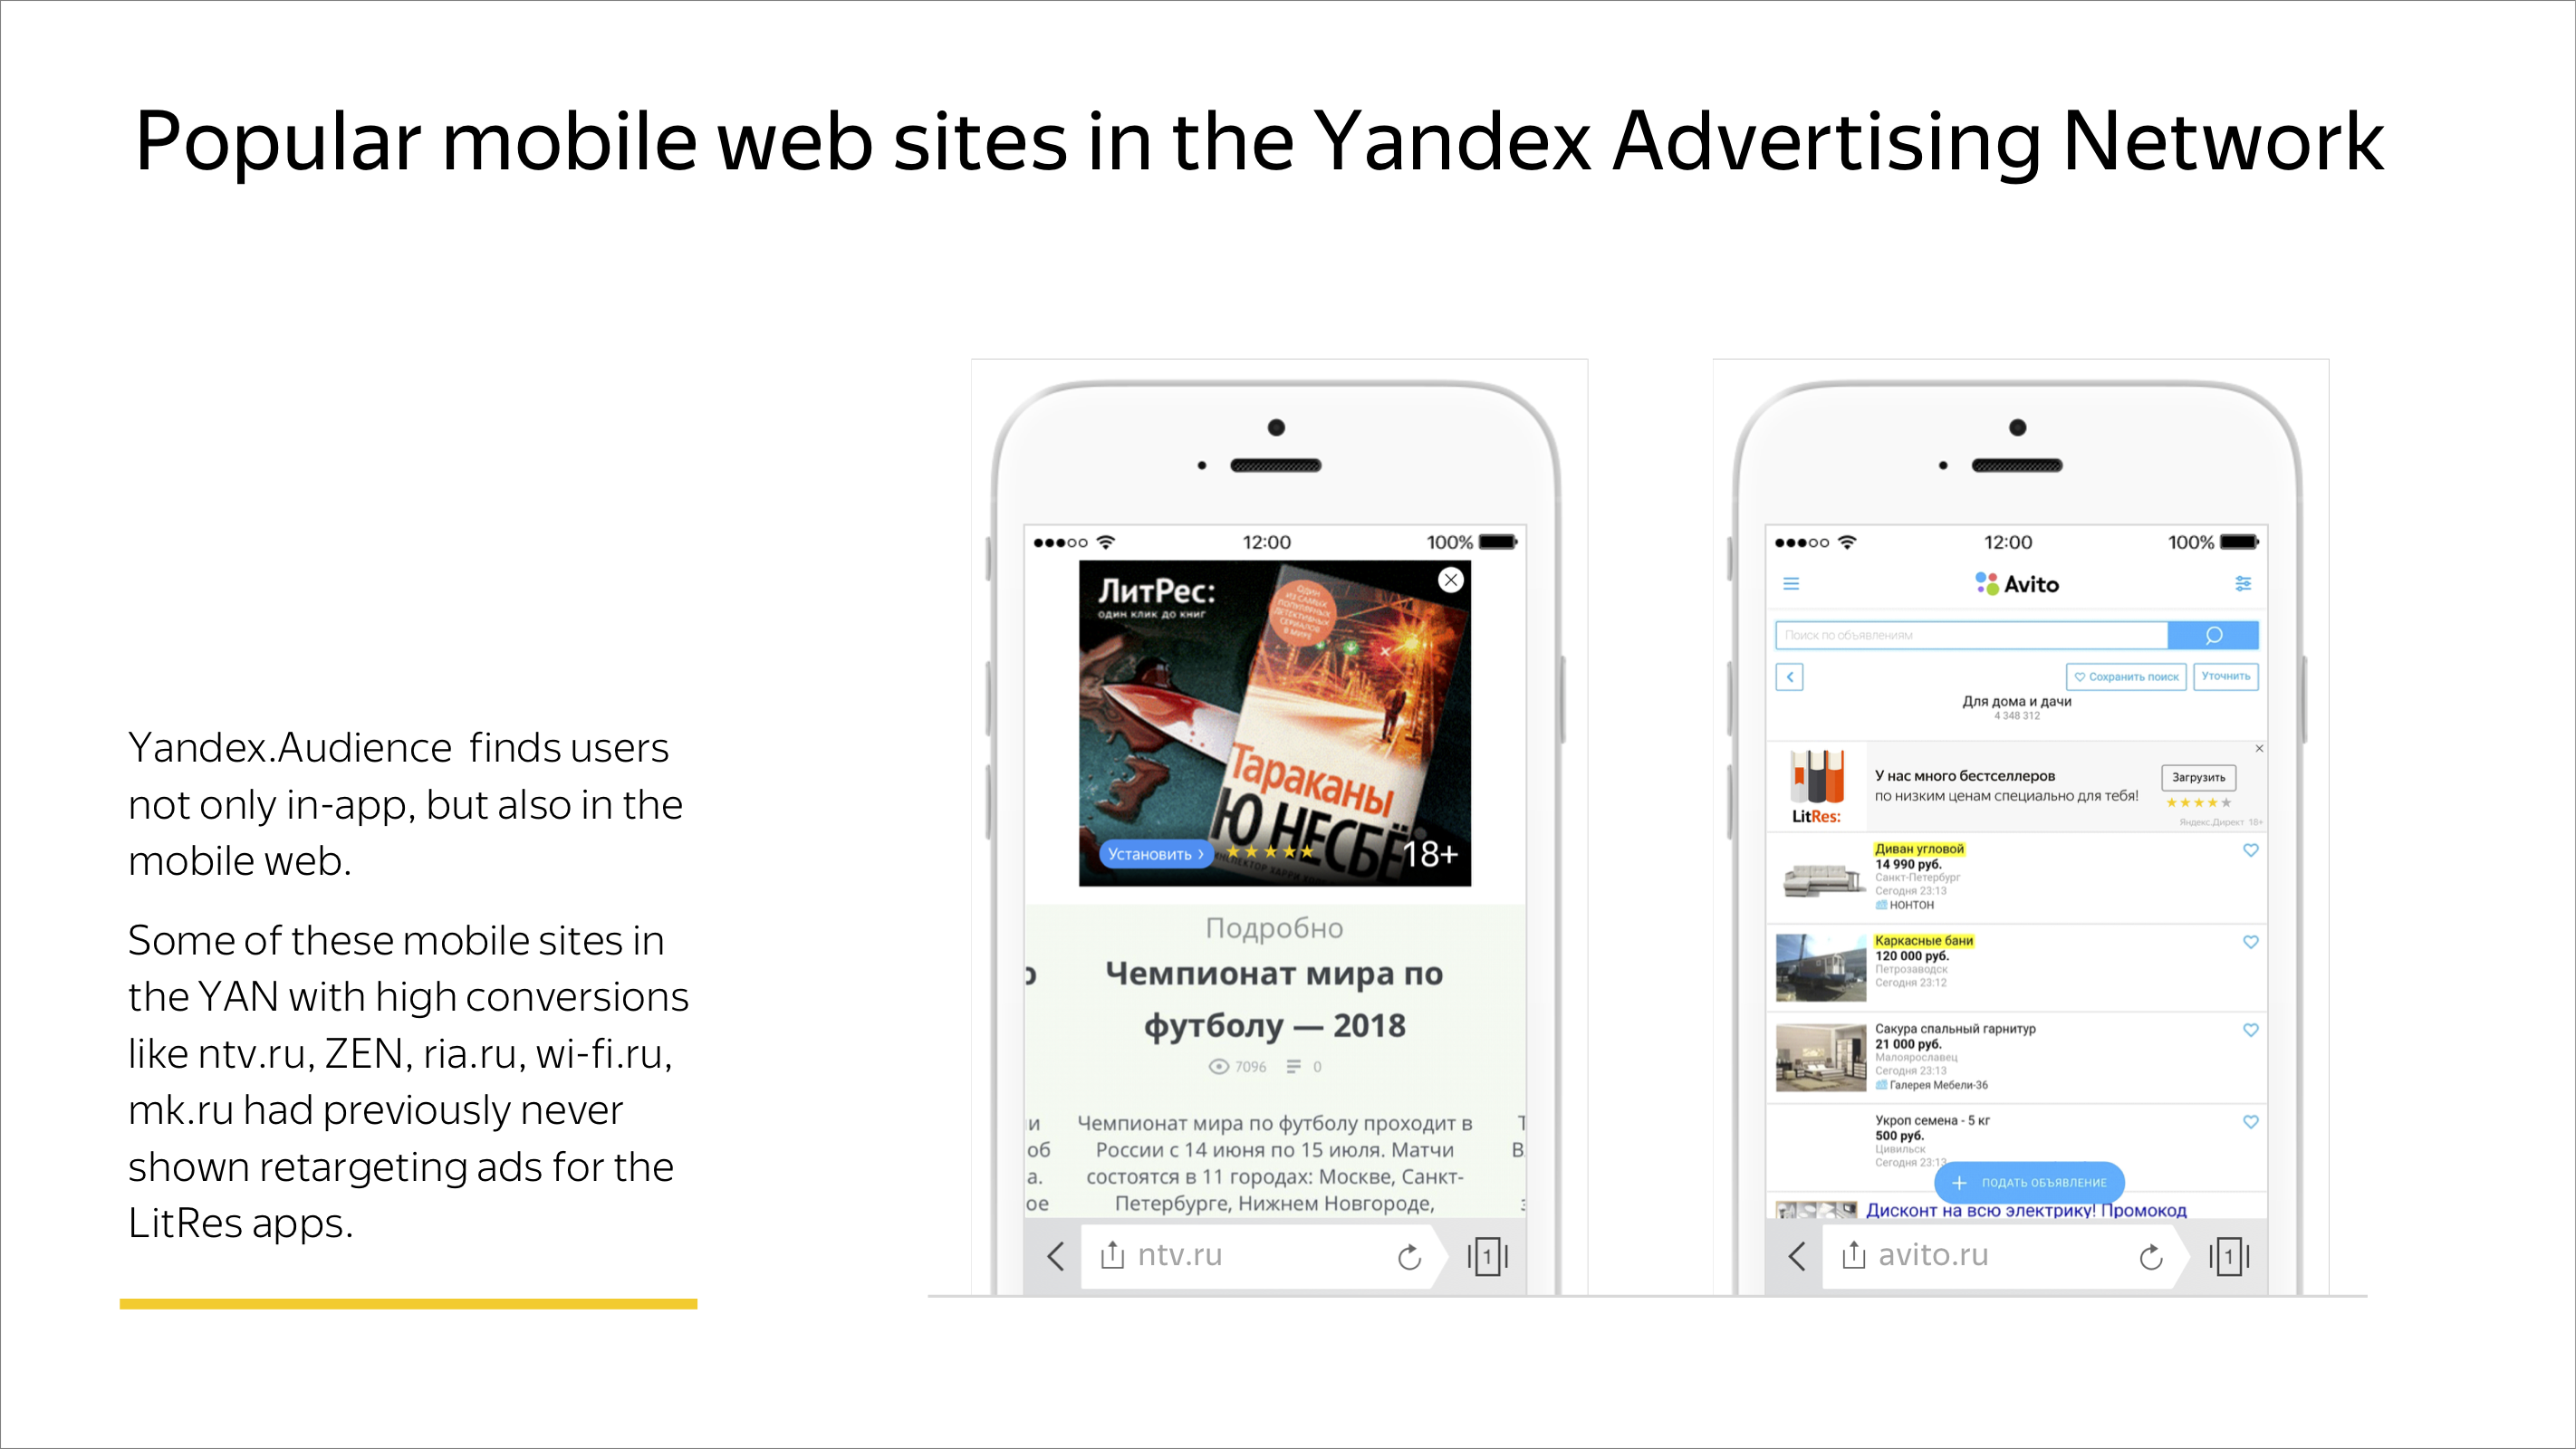 Popular mobile web sites in the Yandex Advertising Network